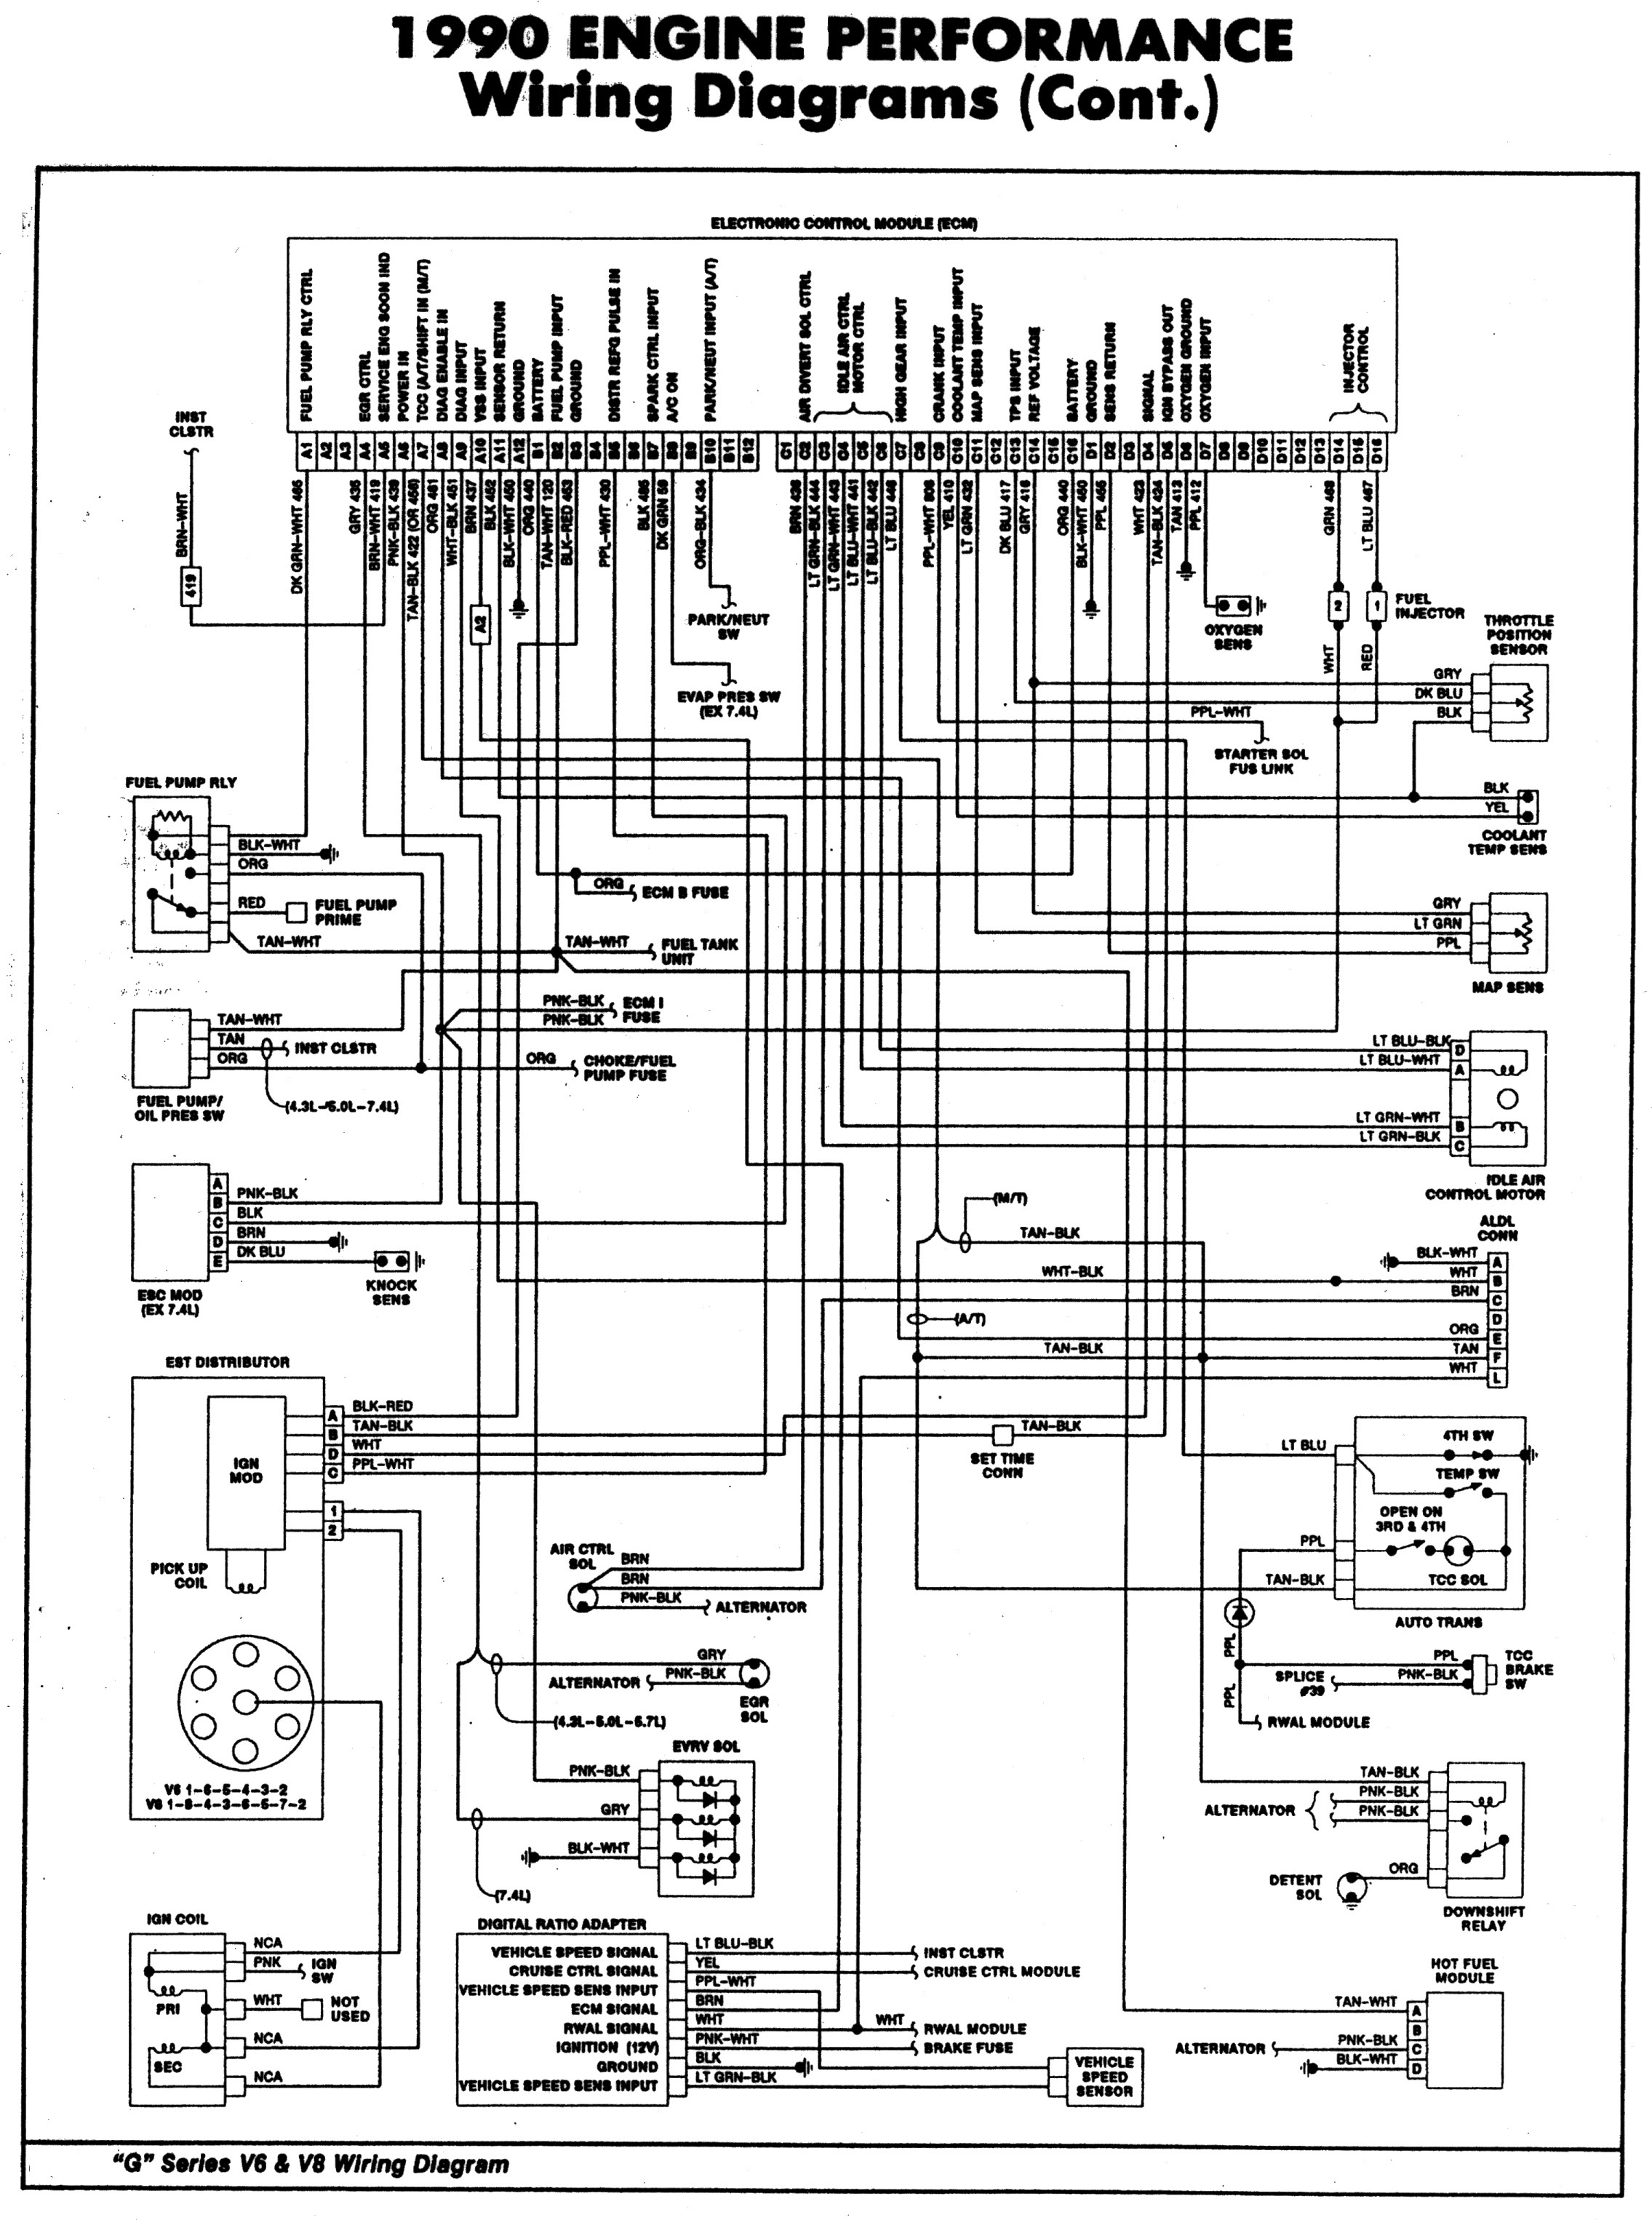 chevy tpi wiring diagram free download schematic wiring diagram 92 camaro wiring diagram free download schematic [ 2271 x 3051 Pixel ]